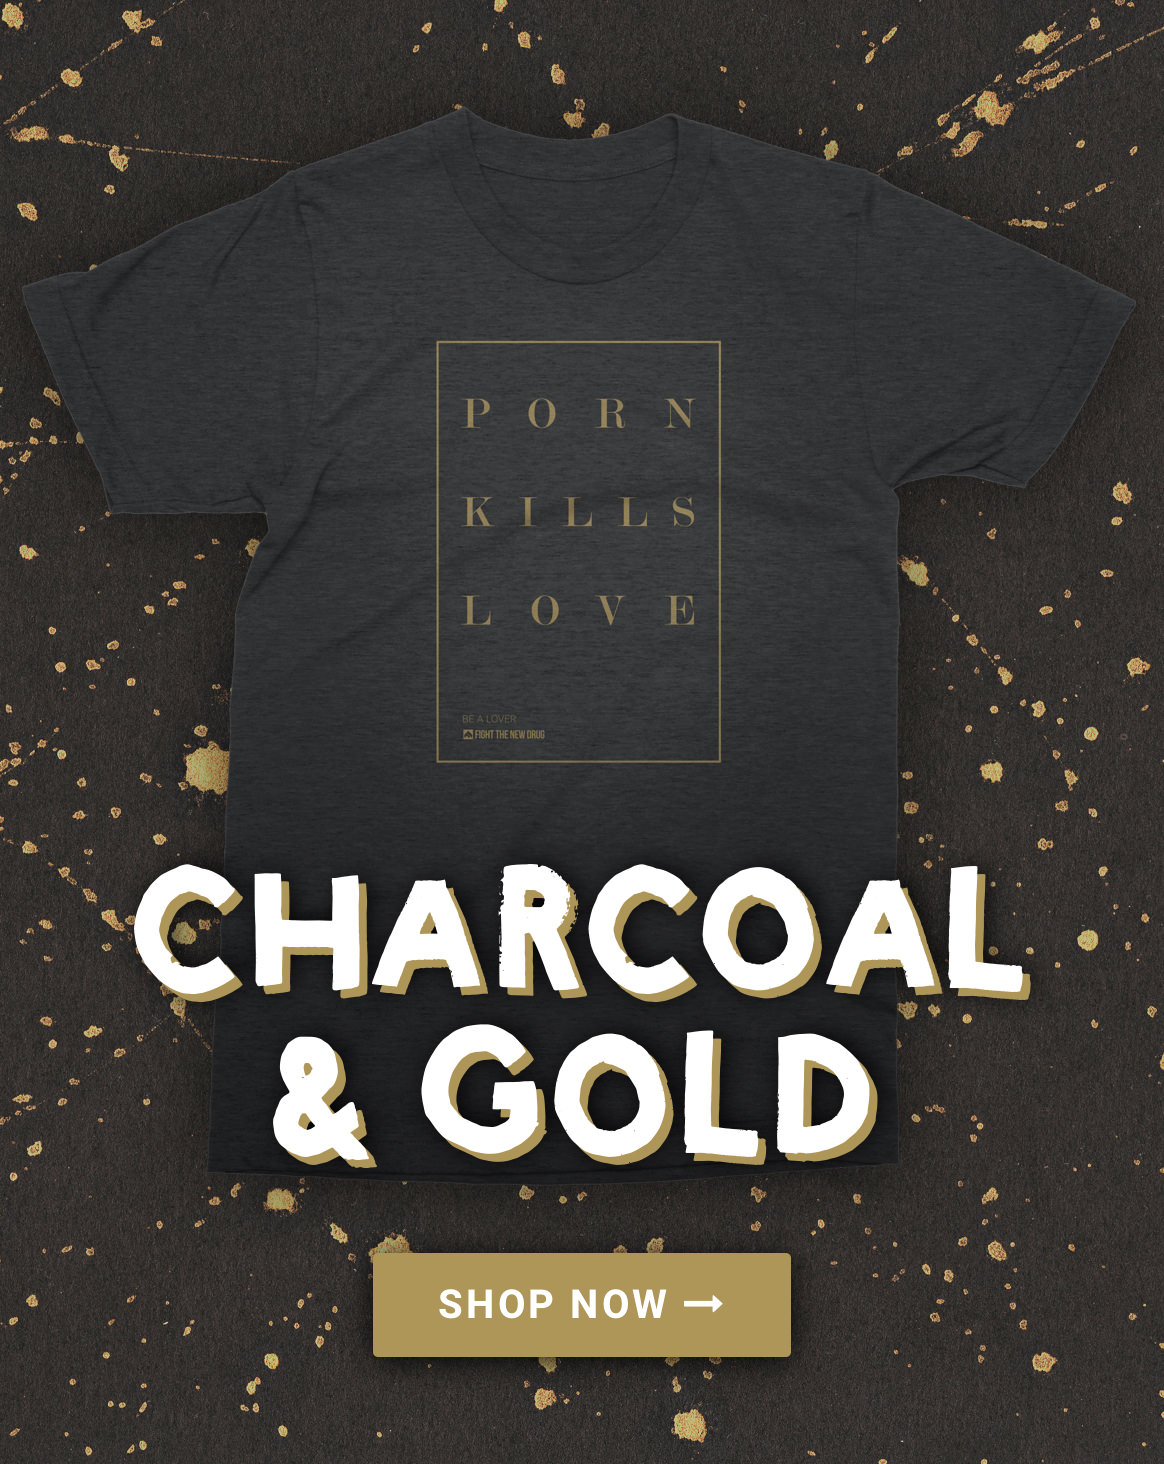 Charcoal & Gold PKL Tee